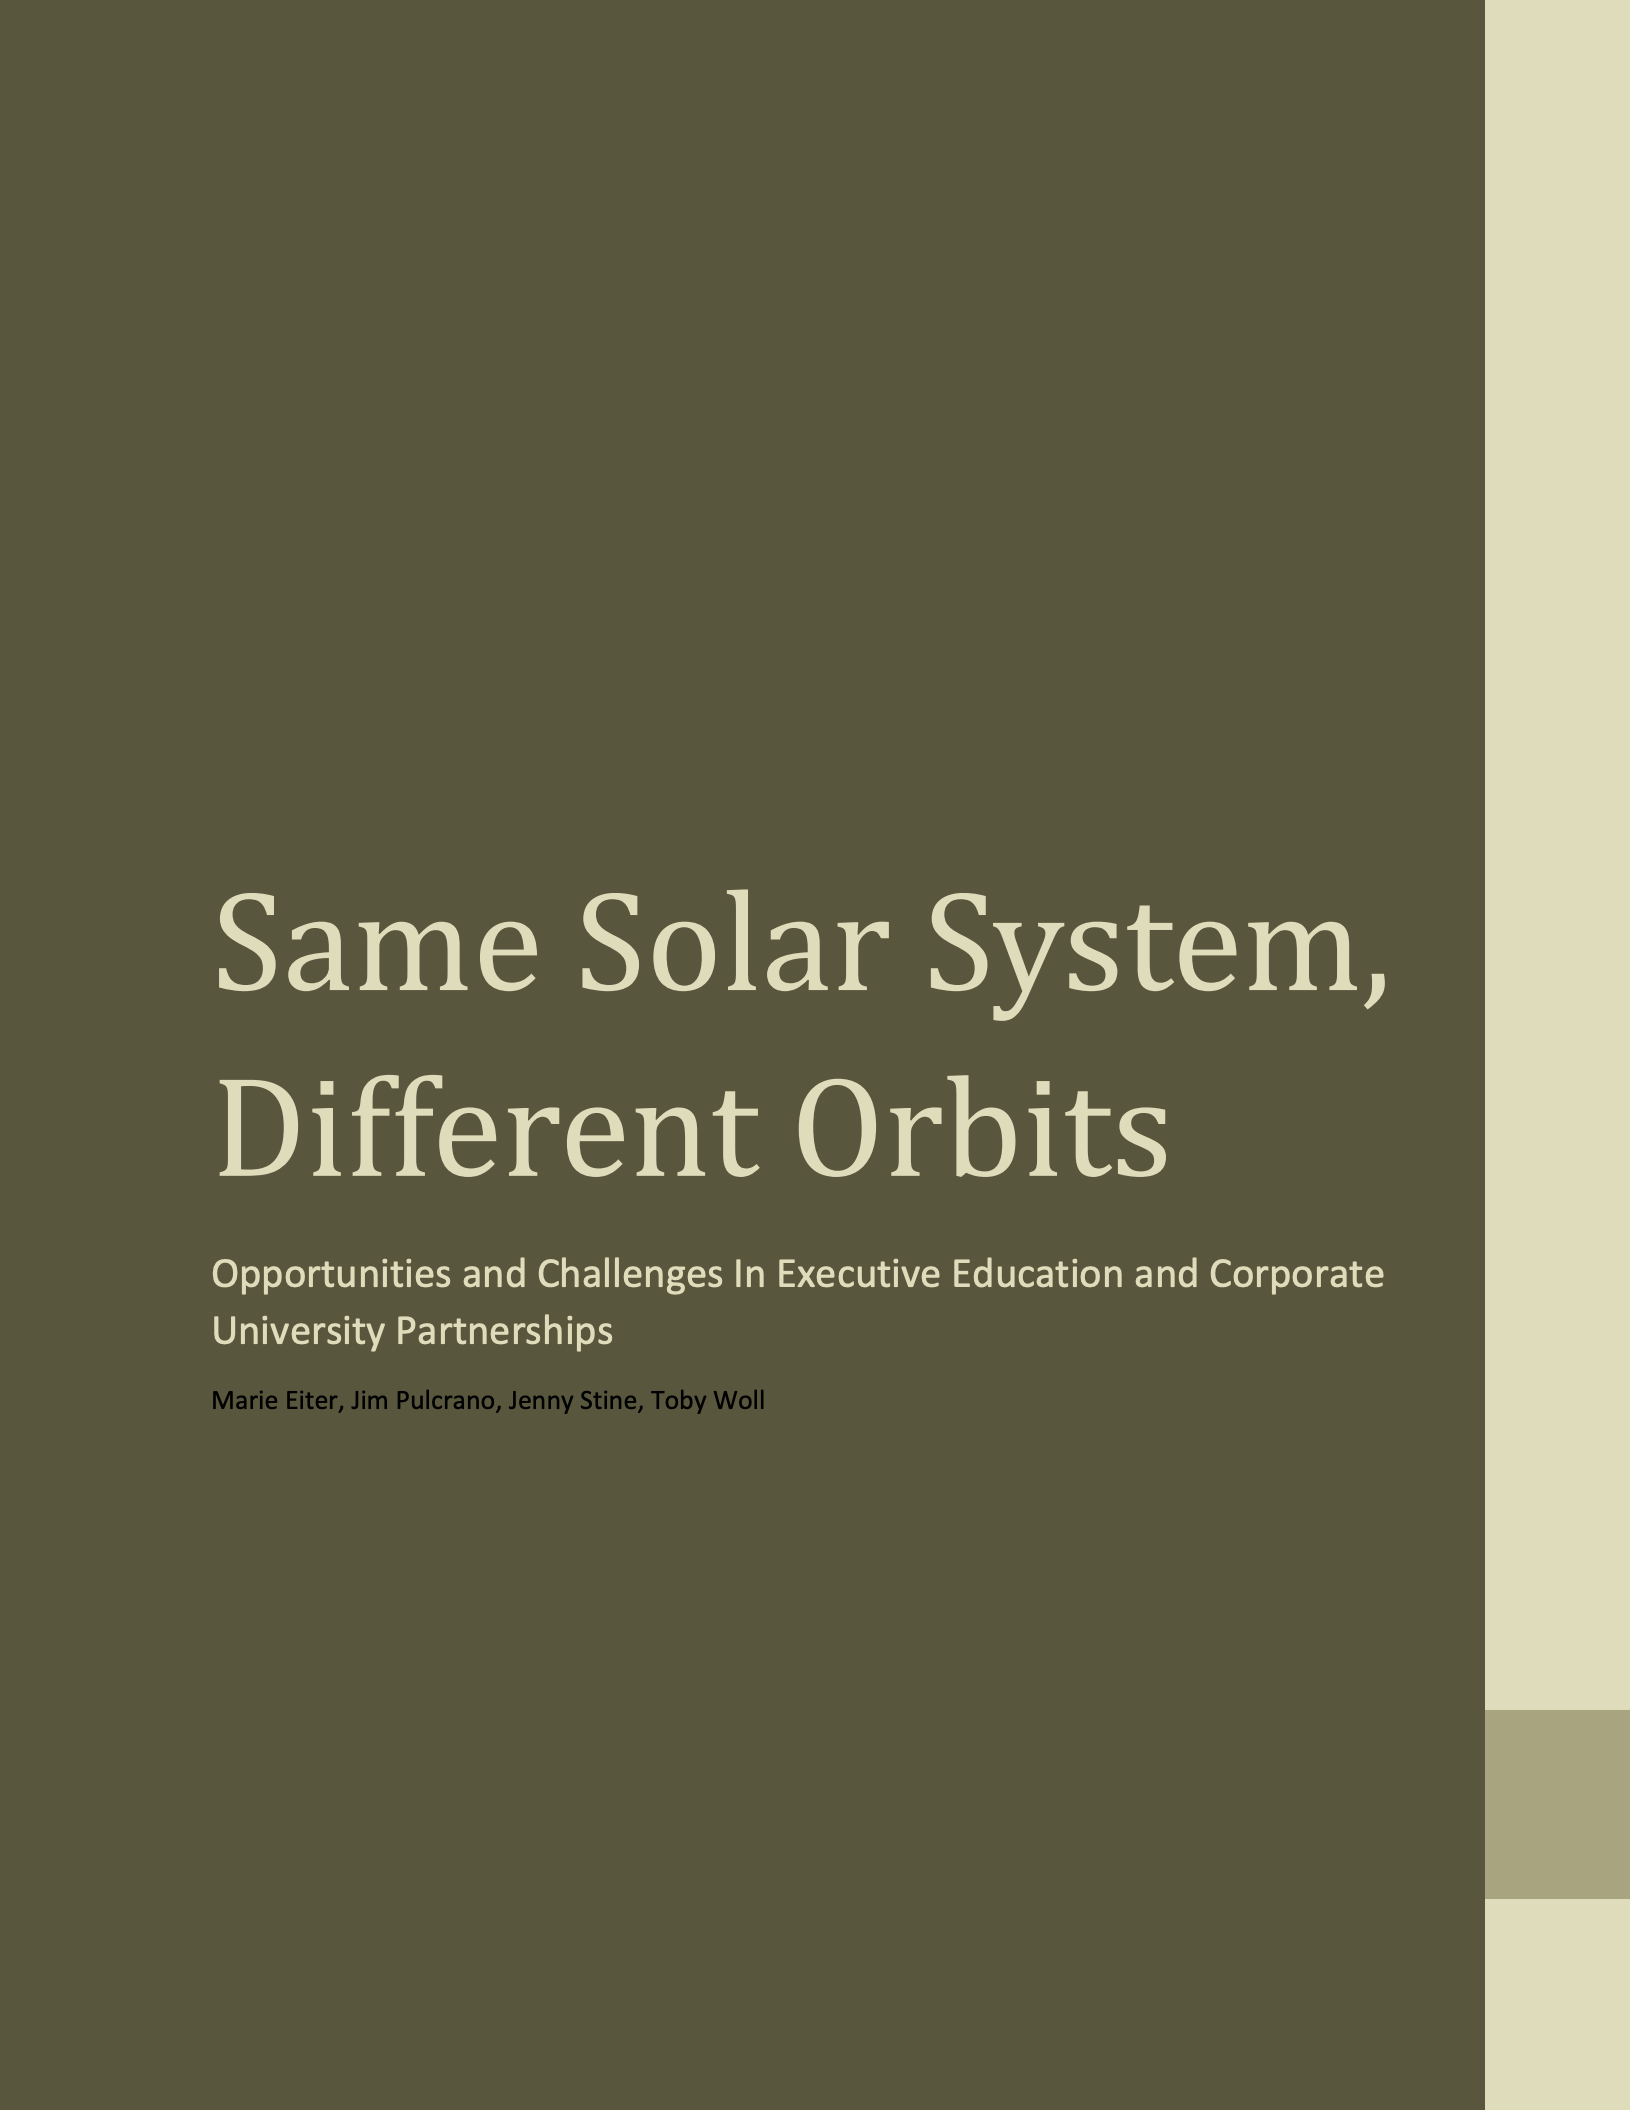 Same Solar System, Different Orbits: Opportunities and Challenges in Executive Education and Corporate University Partnerships . 2014